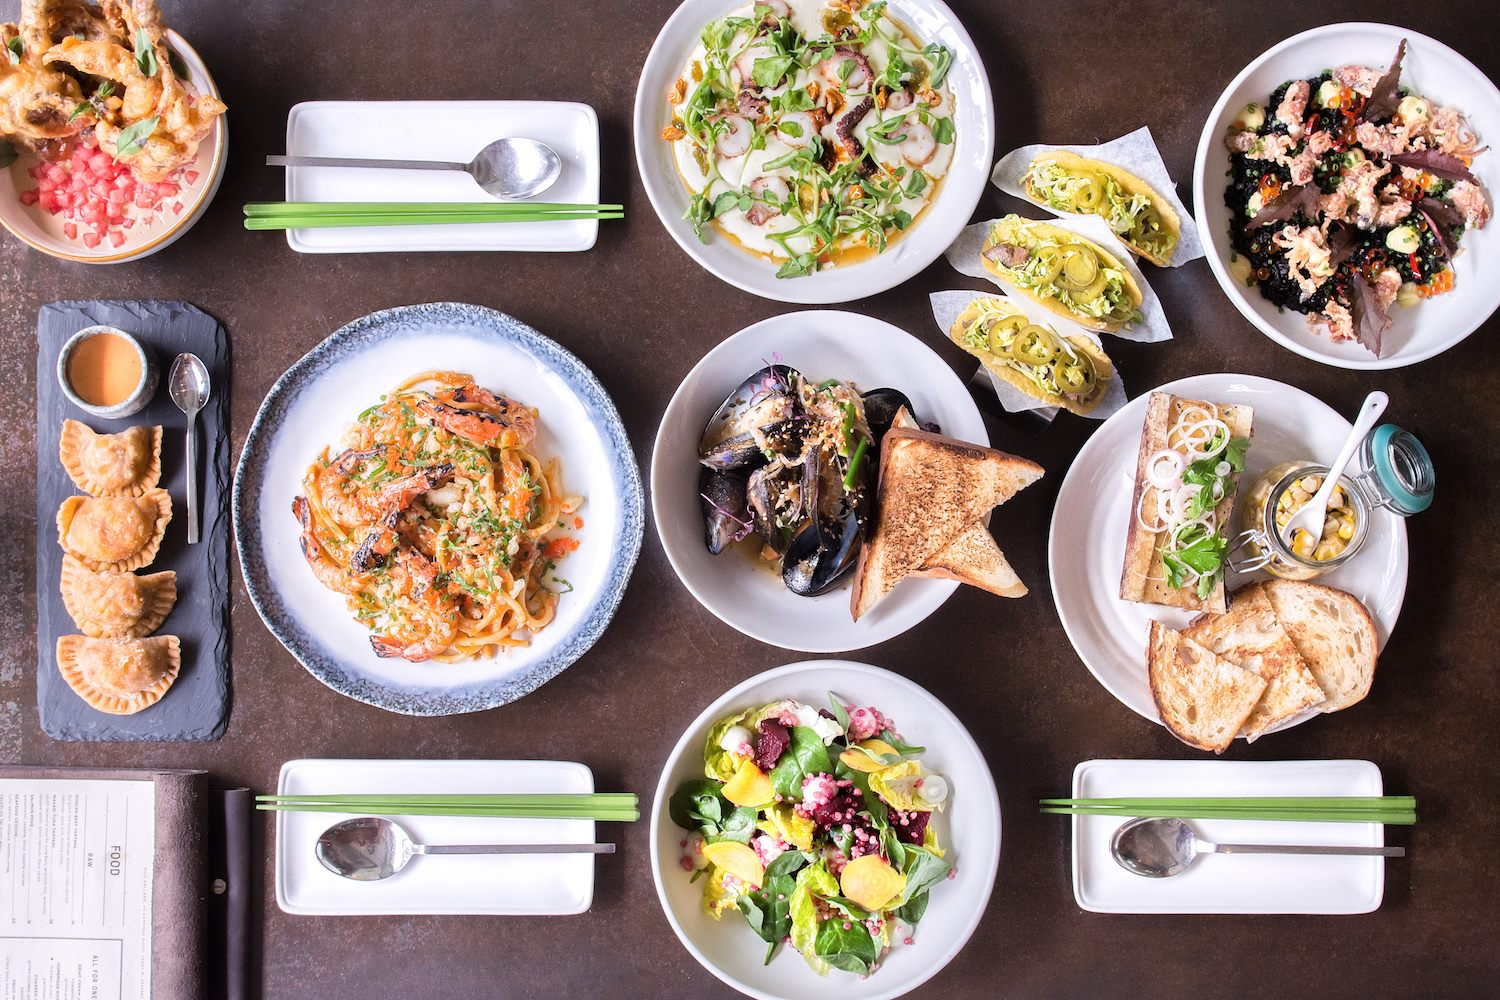 Kilo getting a new home in Duxton later this year